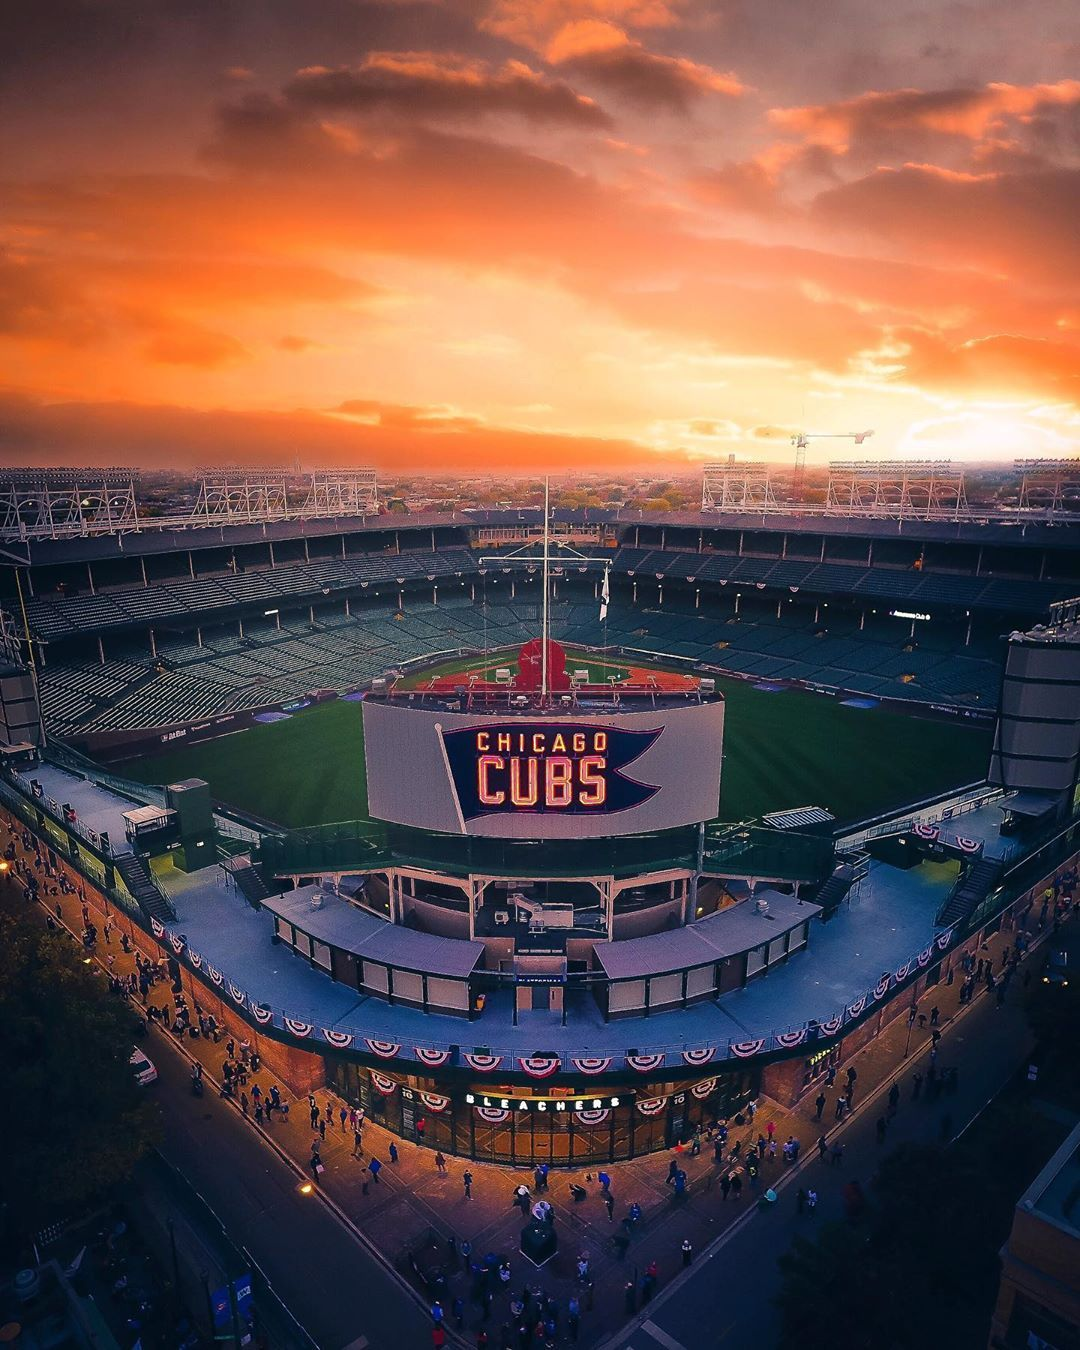 Mike Meyers On Instagram Cubs Vs Sox This Weekend What Side Are You On Chicago Cubs Baseball Wrigley Field Chicago Cubs Wallpaper Wrigley Field Chicago